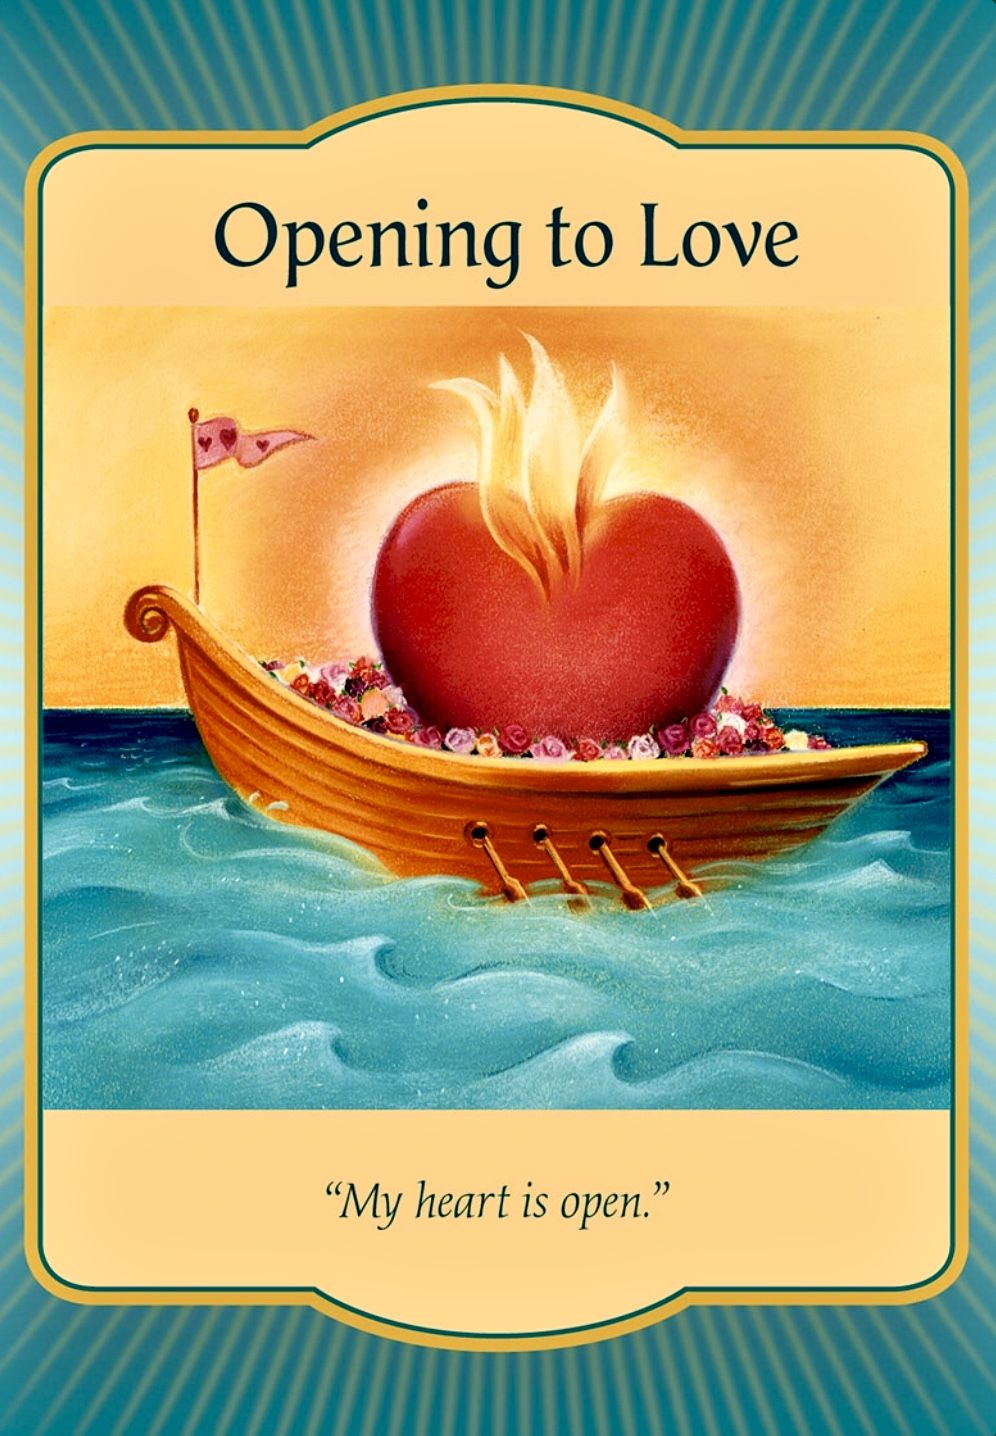 Card Meaning Love Is On Its Way The More You Open To Love The More Its Sweet Nectar Can Surge Through Love You Forever Book Oracle Cards Angel Oracle Cards